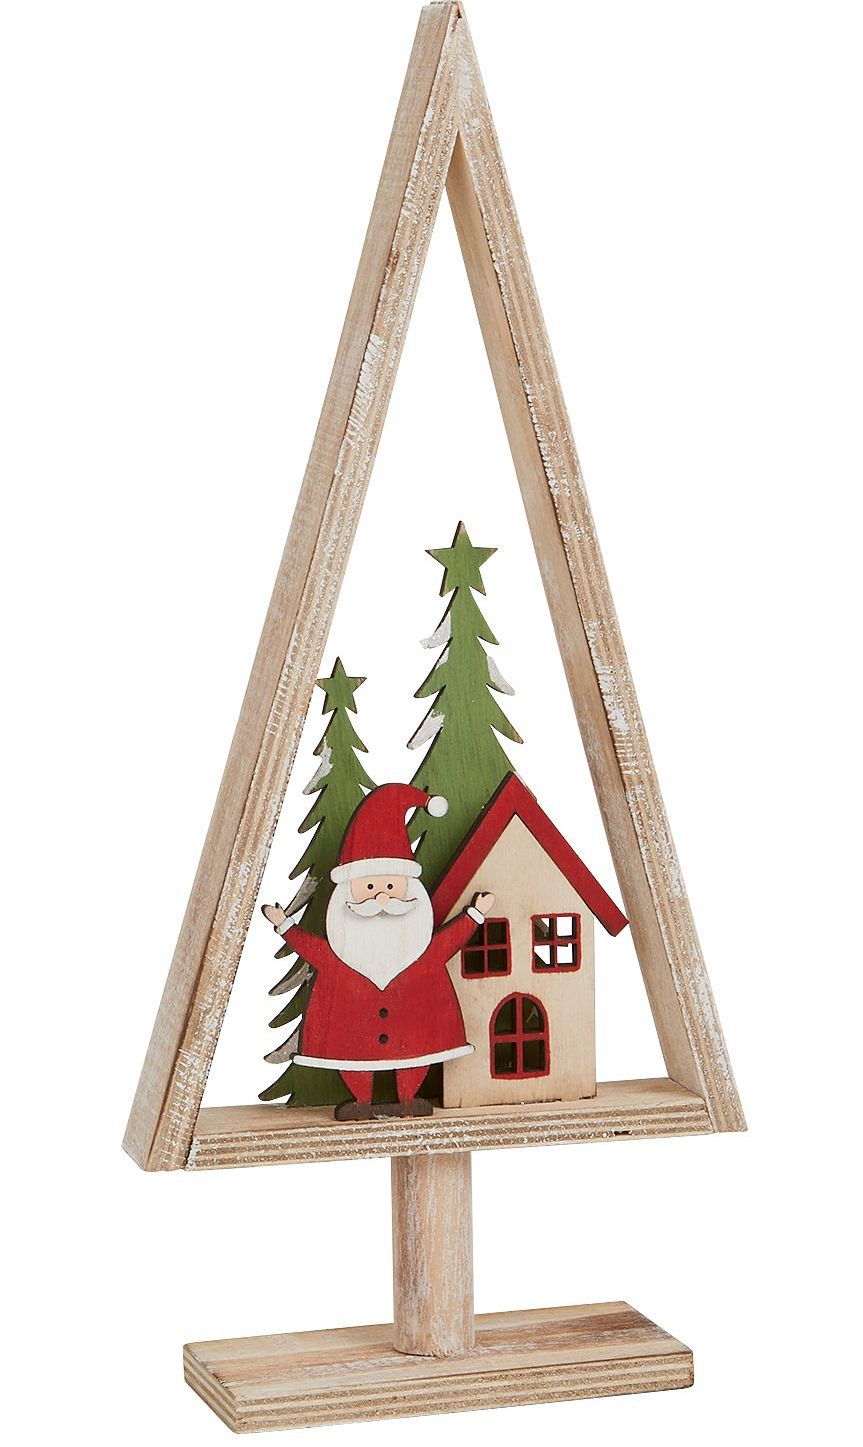 Christmas Santa In Rustic Wooden Christmas Tree By Archipelago Christmas Decoration Red And Green With Natural Wood S2023